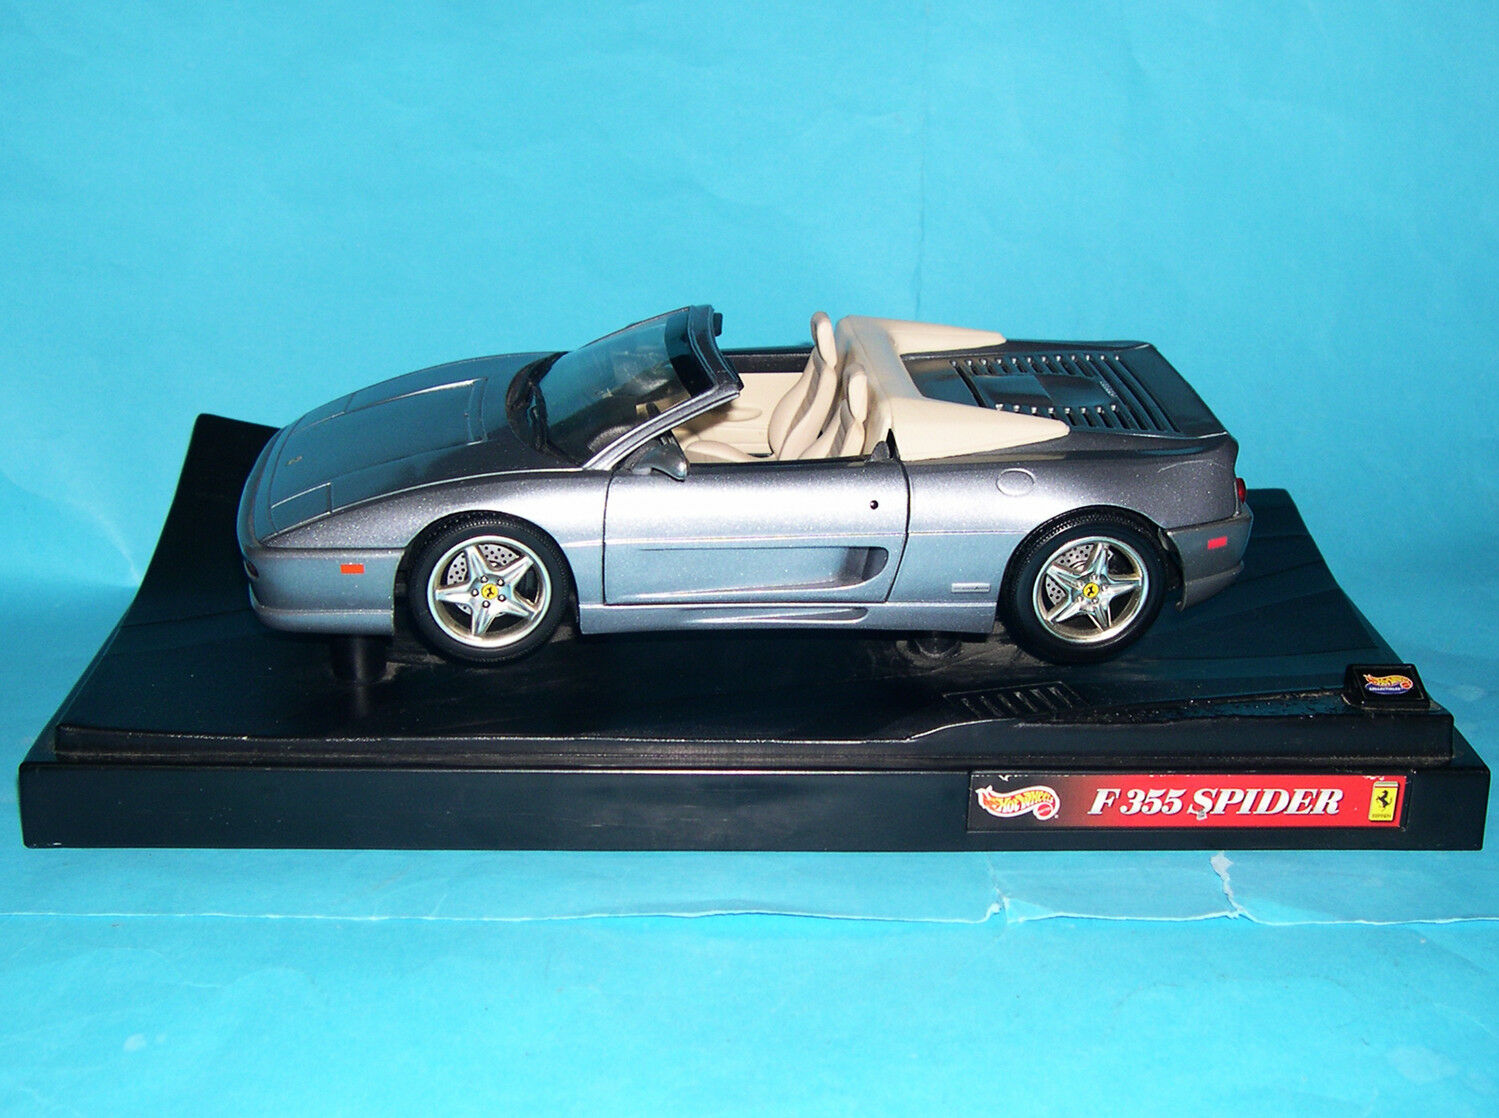 Hot Wheels 1 18 Scale Model Ferrari F355 Spider Metallic grau   Cream Interior.